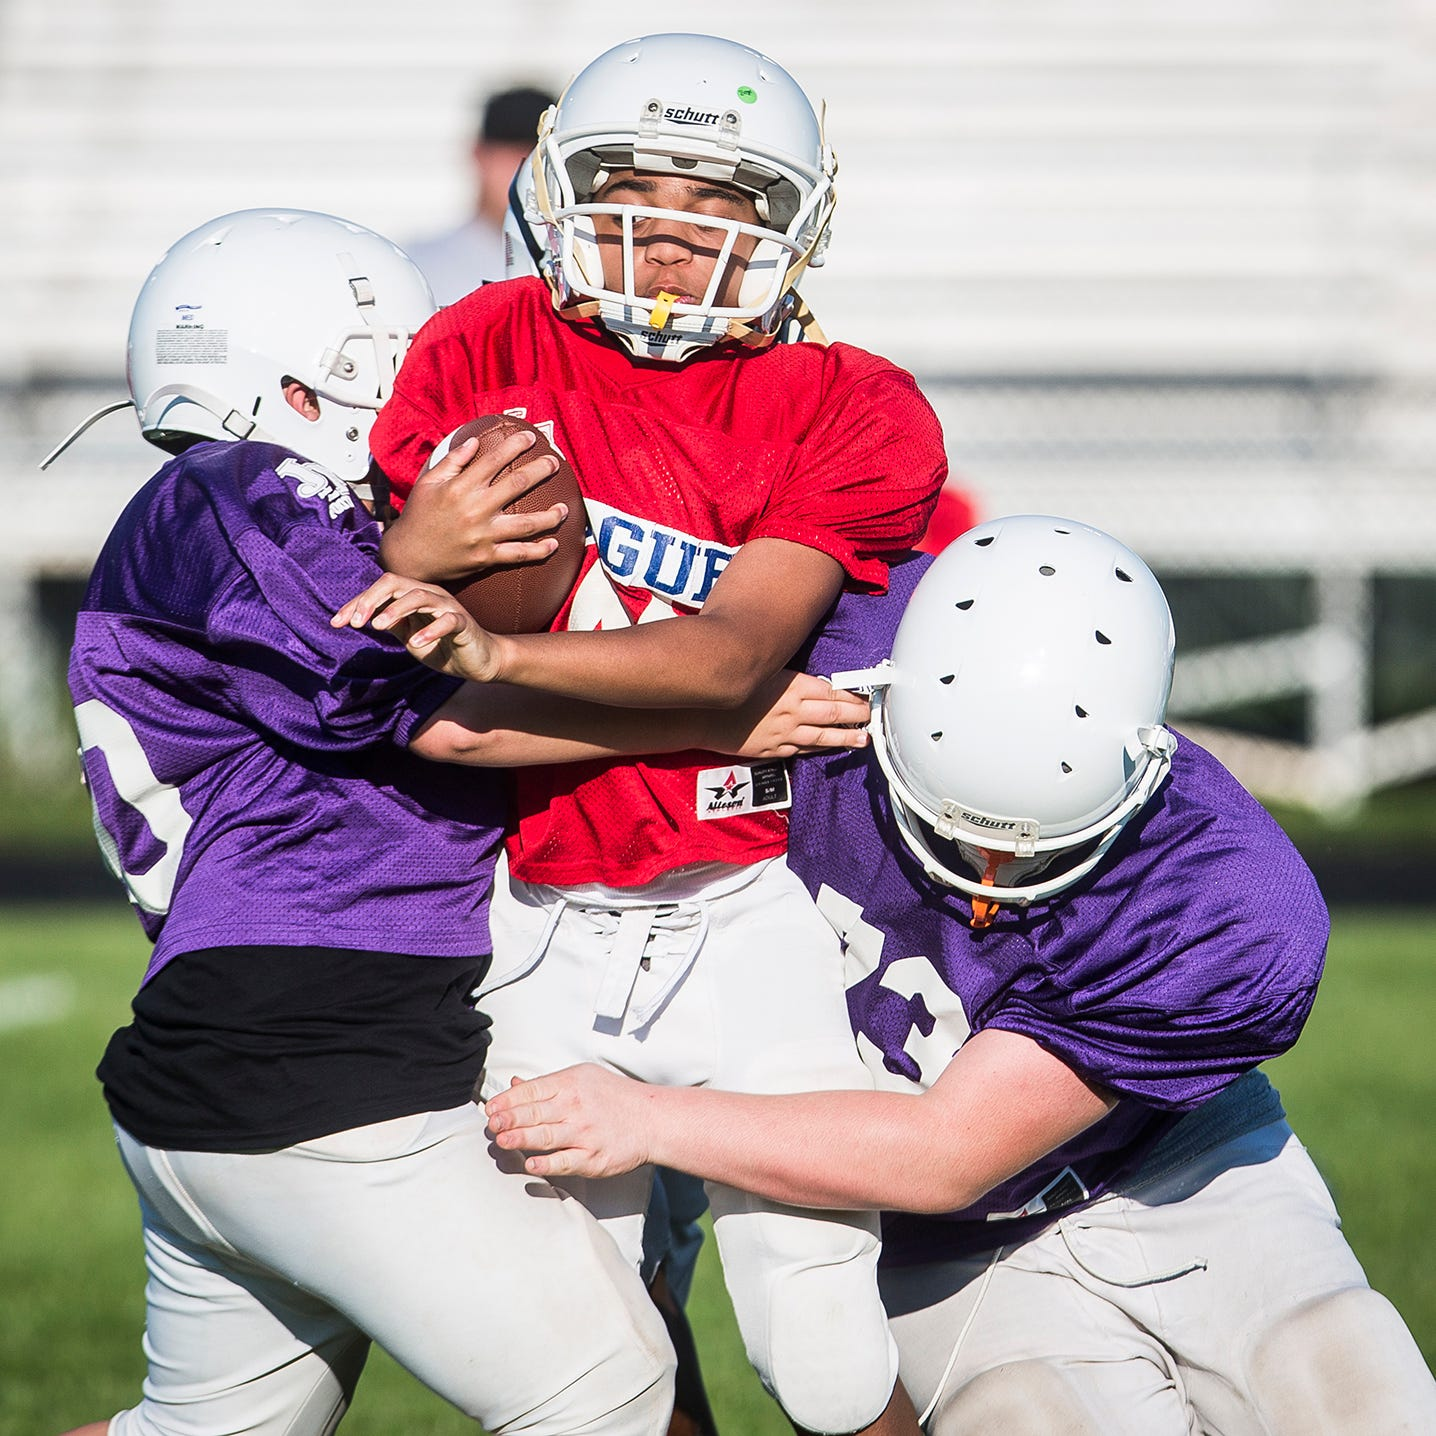 To play or not to play: The ongoing football question for Muncie-area youth